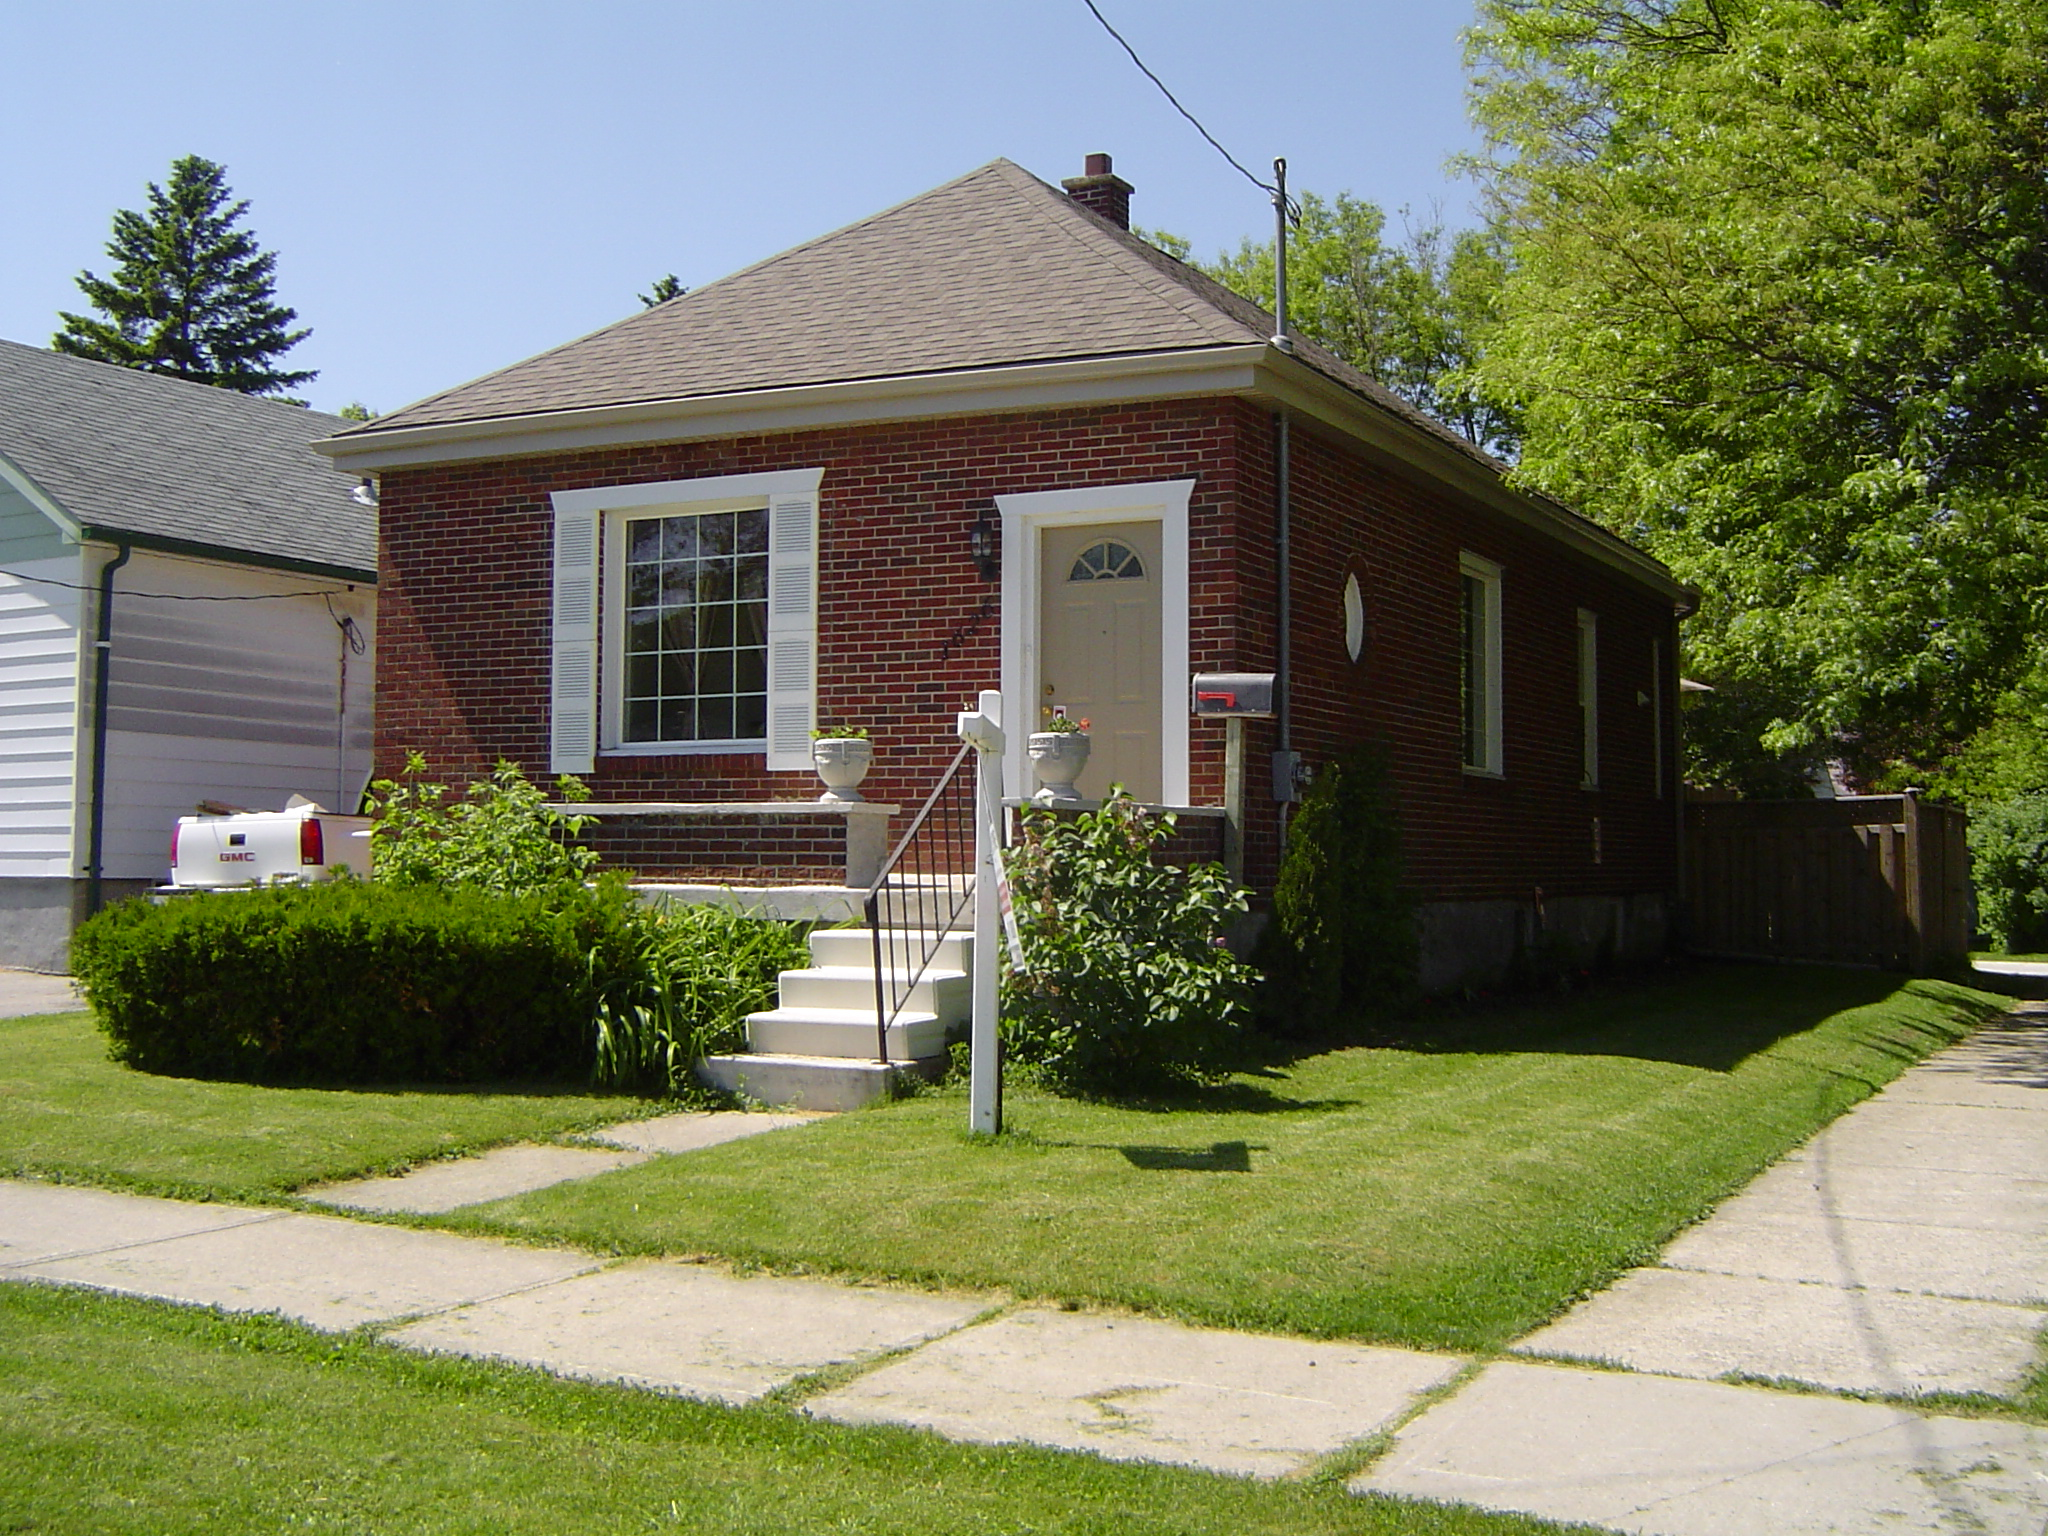 Renovated all brick Bungalow located 1 block to Kiwanis Park